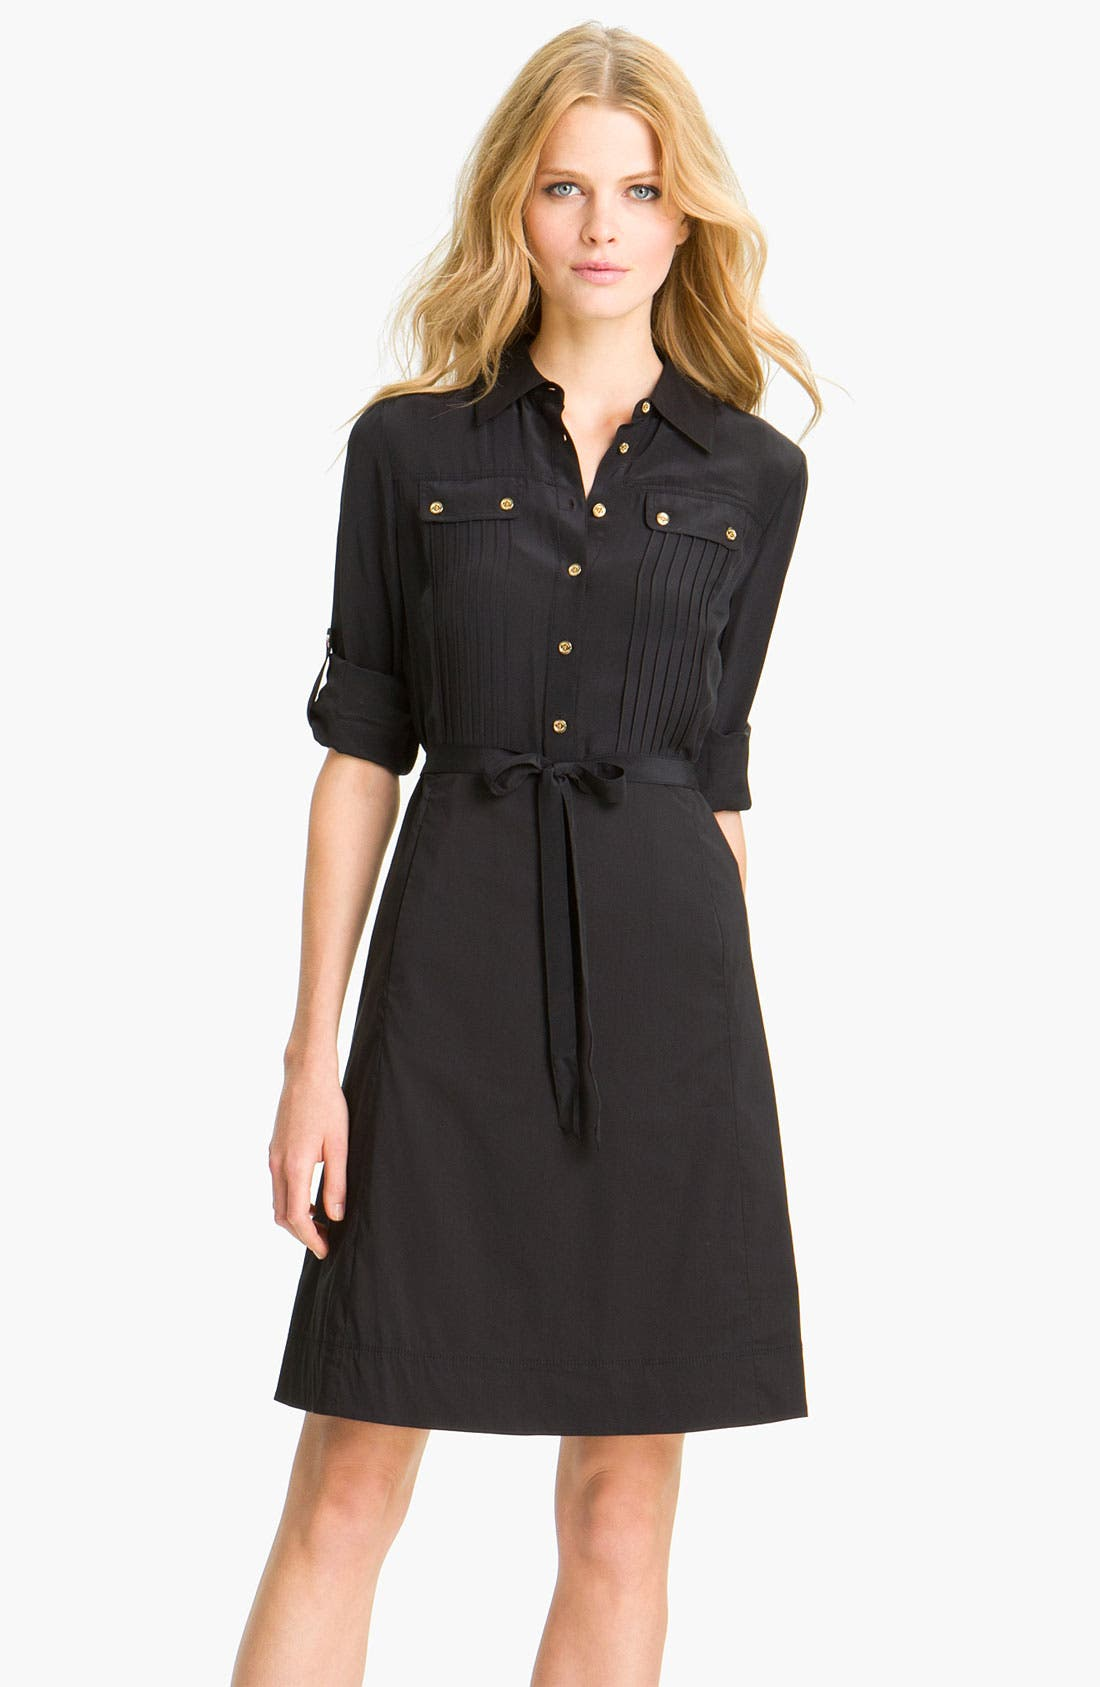 Alternate Image 1 Selected - Tory Burch 'Emmanuelle' Shirtdress